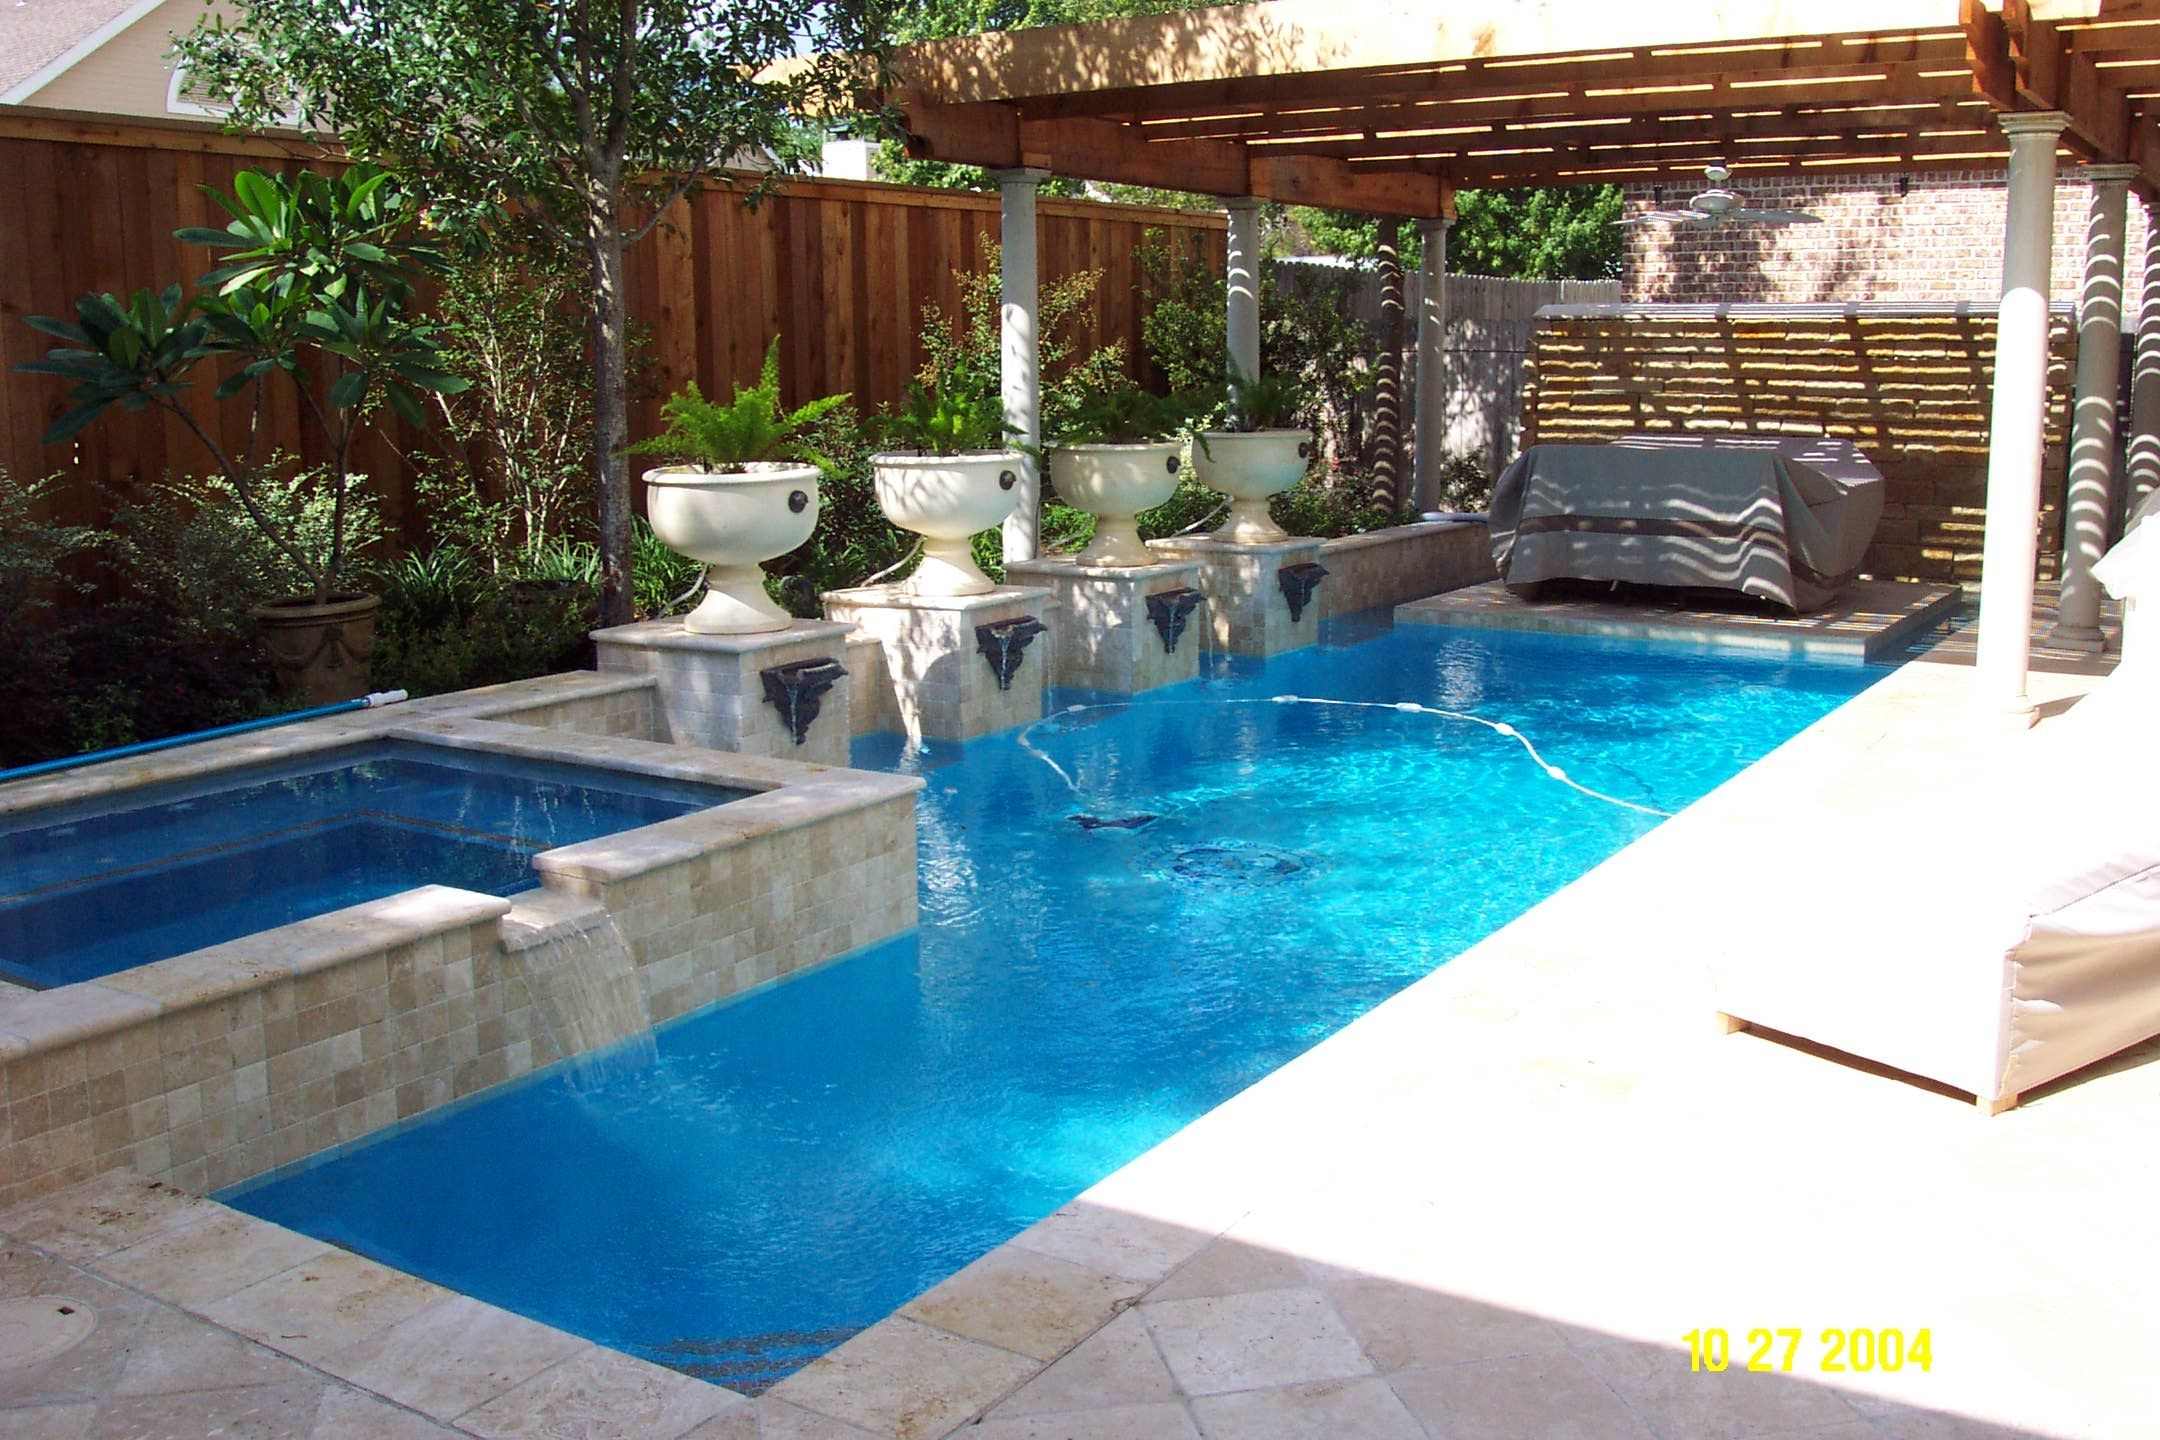 Swimming pool designs small - Swimming Pool Designs Small Yards Home Design Ideas With Swimming Pool Designs